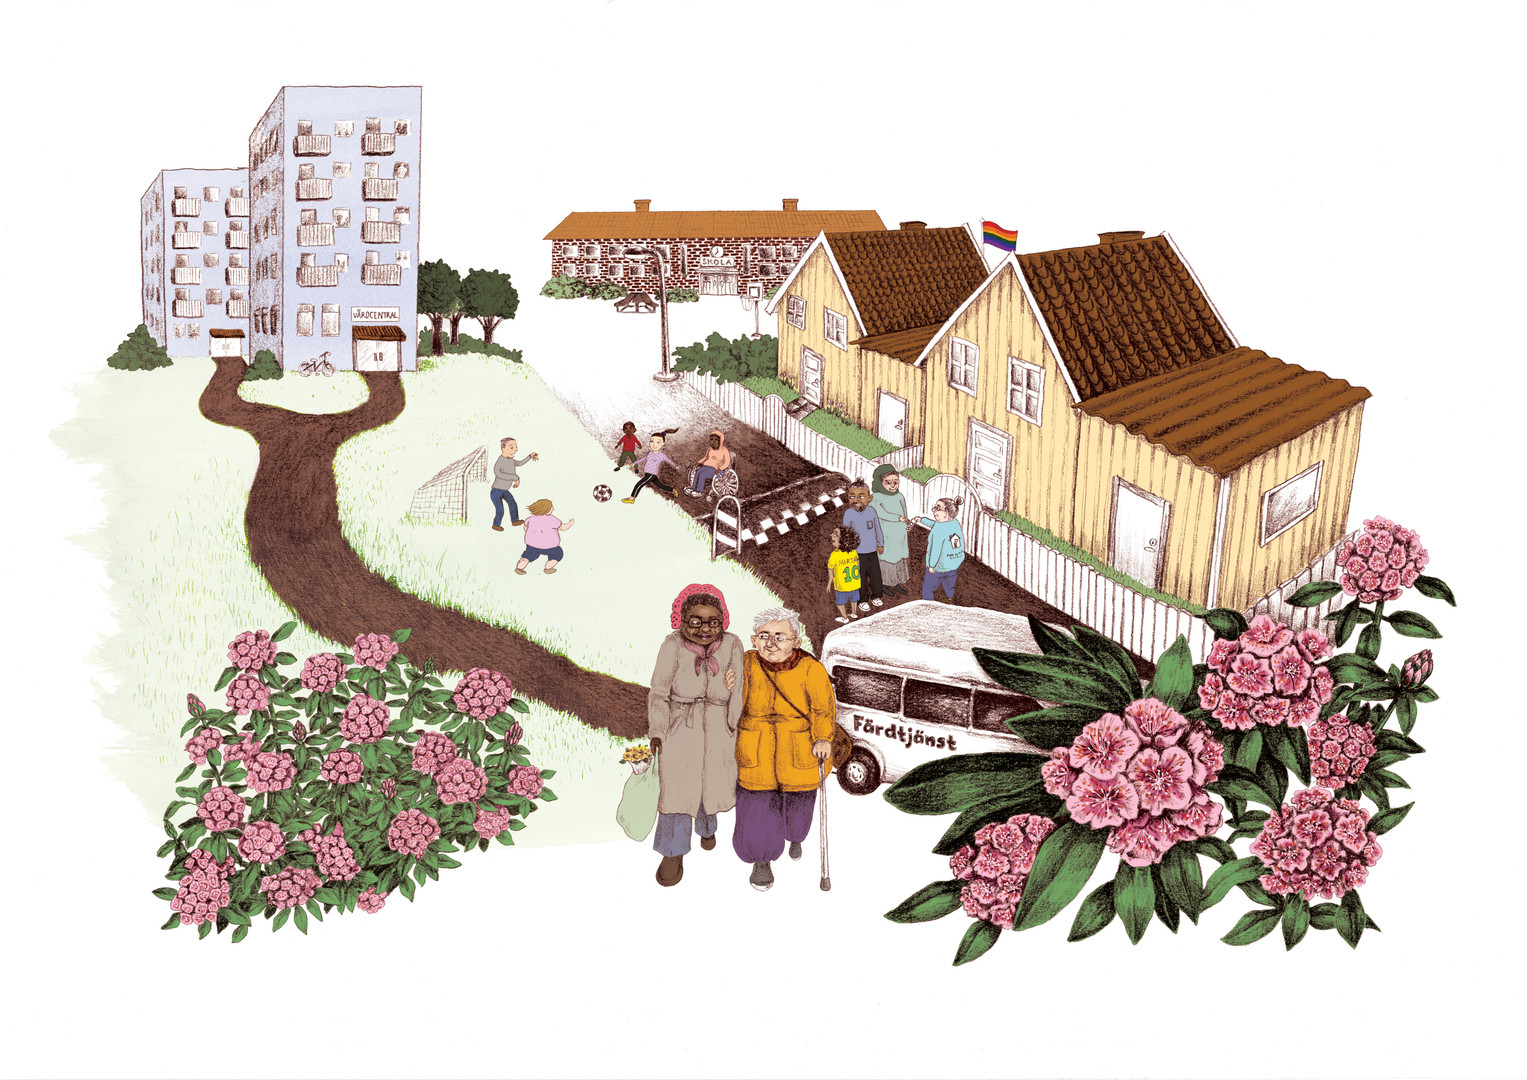 Illustration till Kronoberg region